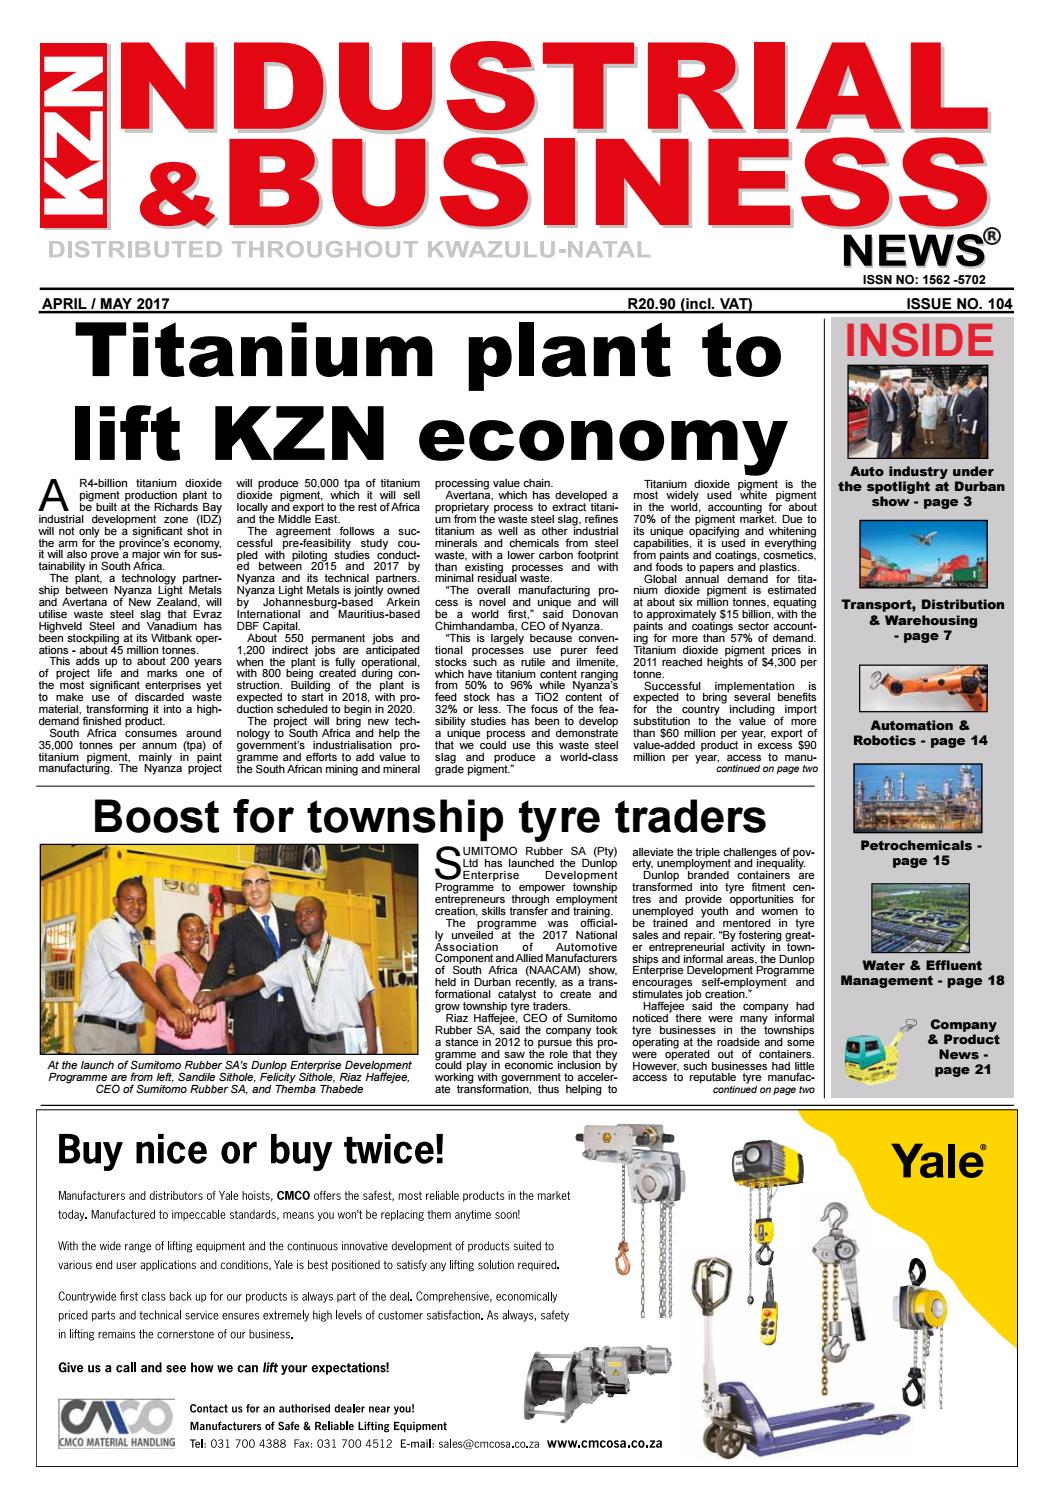 Kzn industrial & business news issue 104 a m 2017 by The